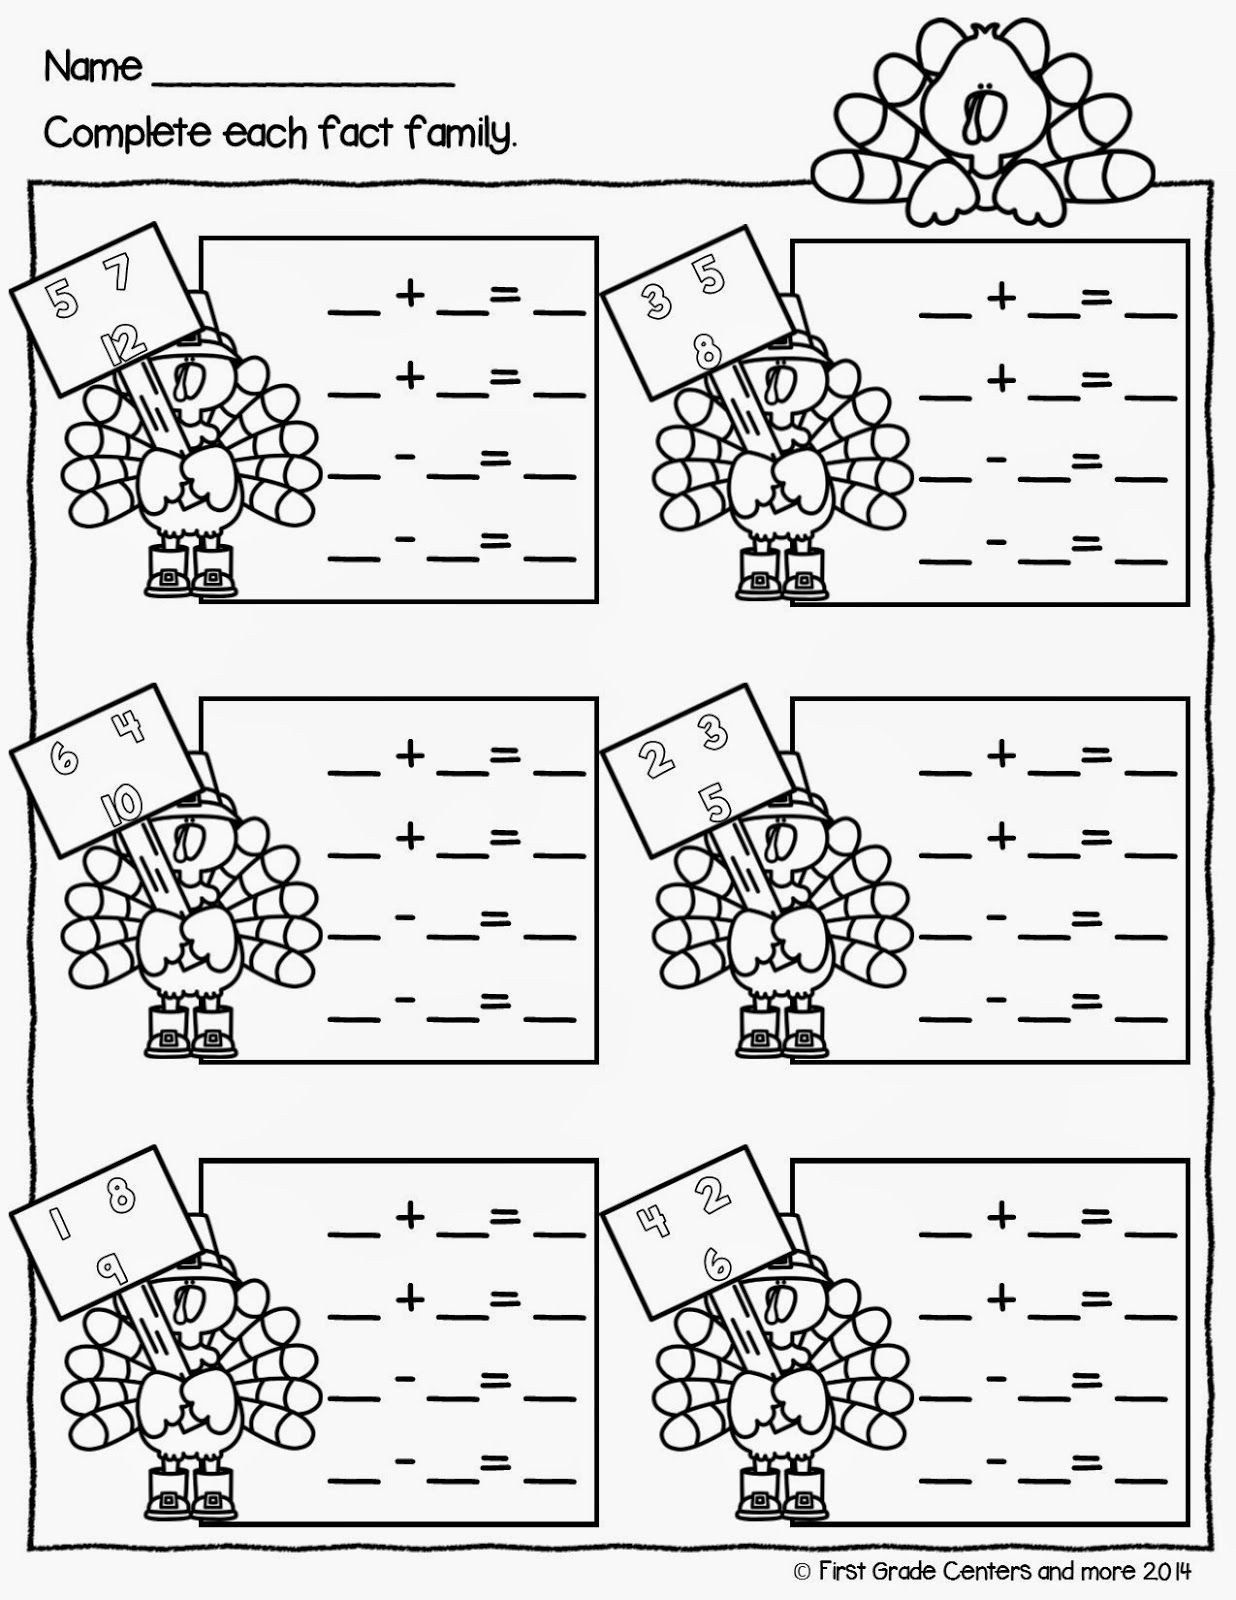 small resolution of Fact Family Worksheets 1st Grade Thanksgiving Week in 2020   Fact family  worksheet